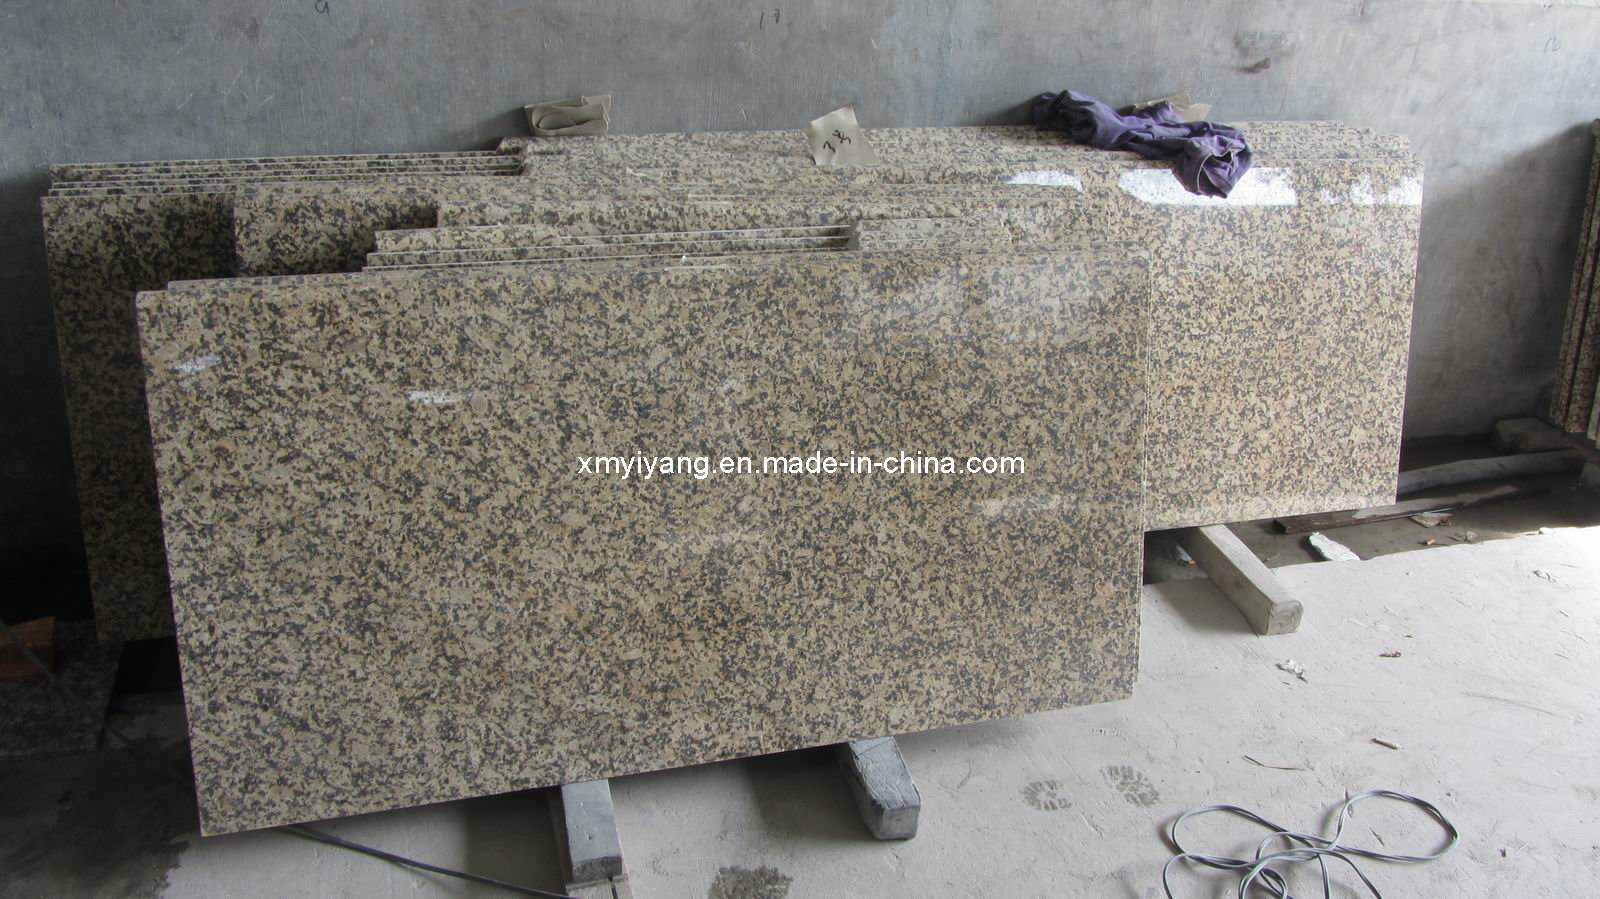 Daisy Yellow Granite Countertop for Kitchen, Bathroom, Island, Bar